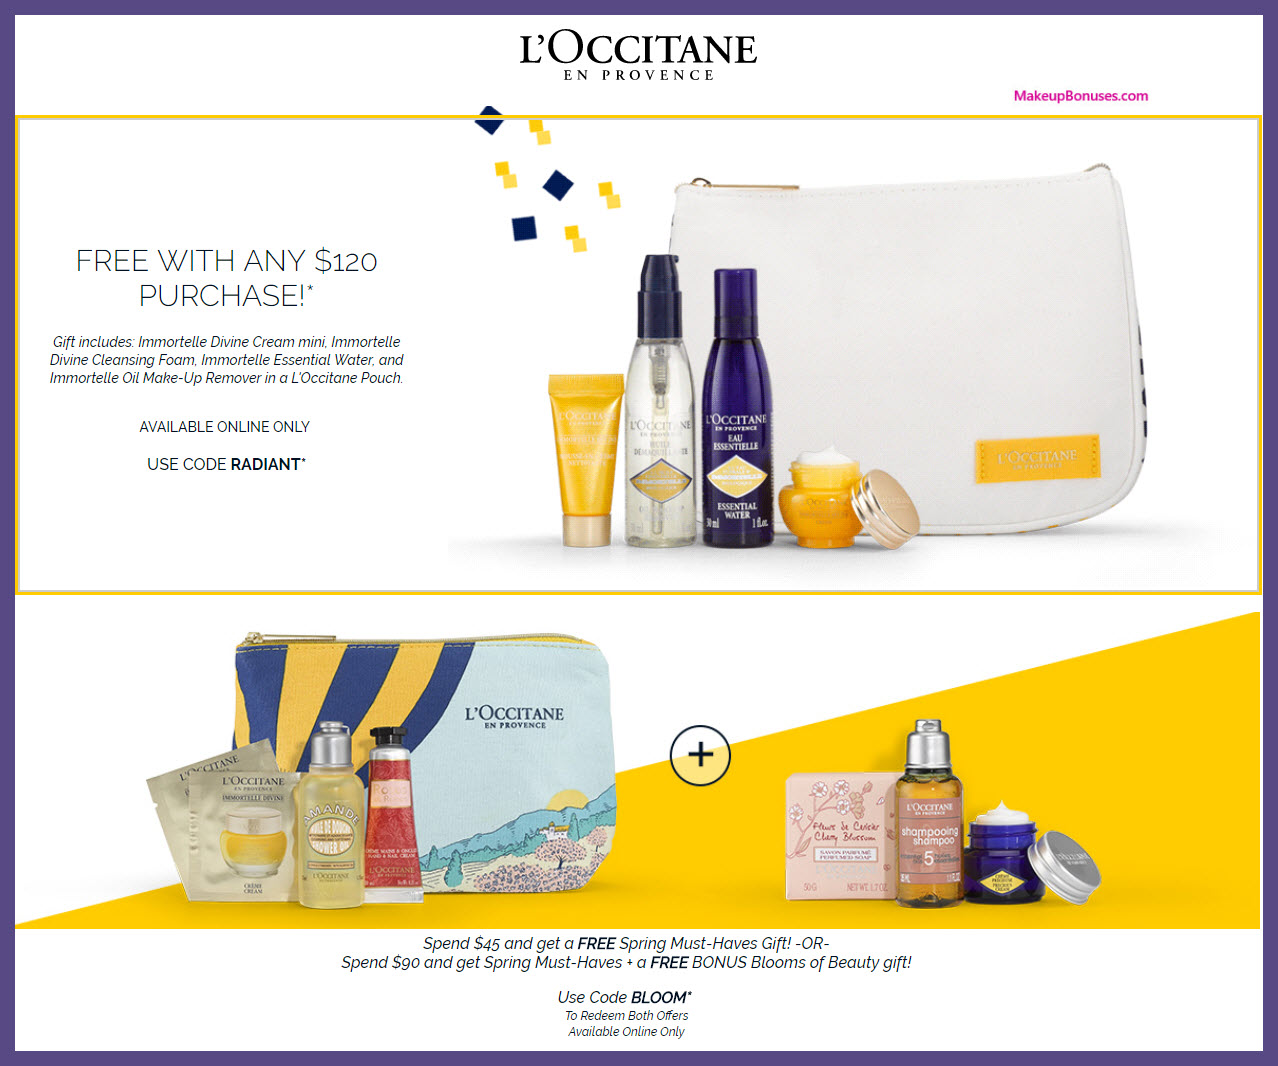 Receive a free 4-pc gift with $45 L'Occitane purchase